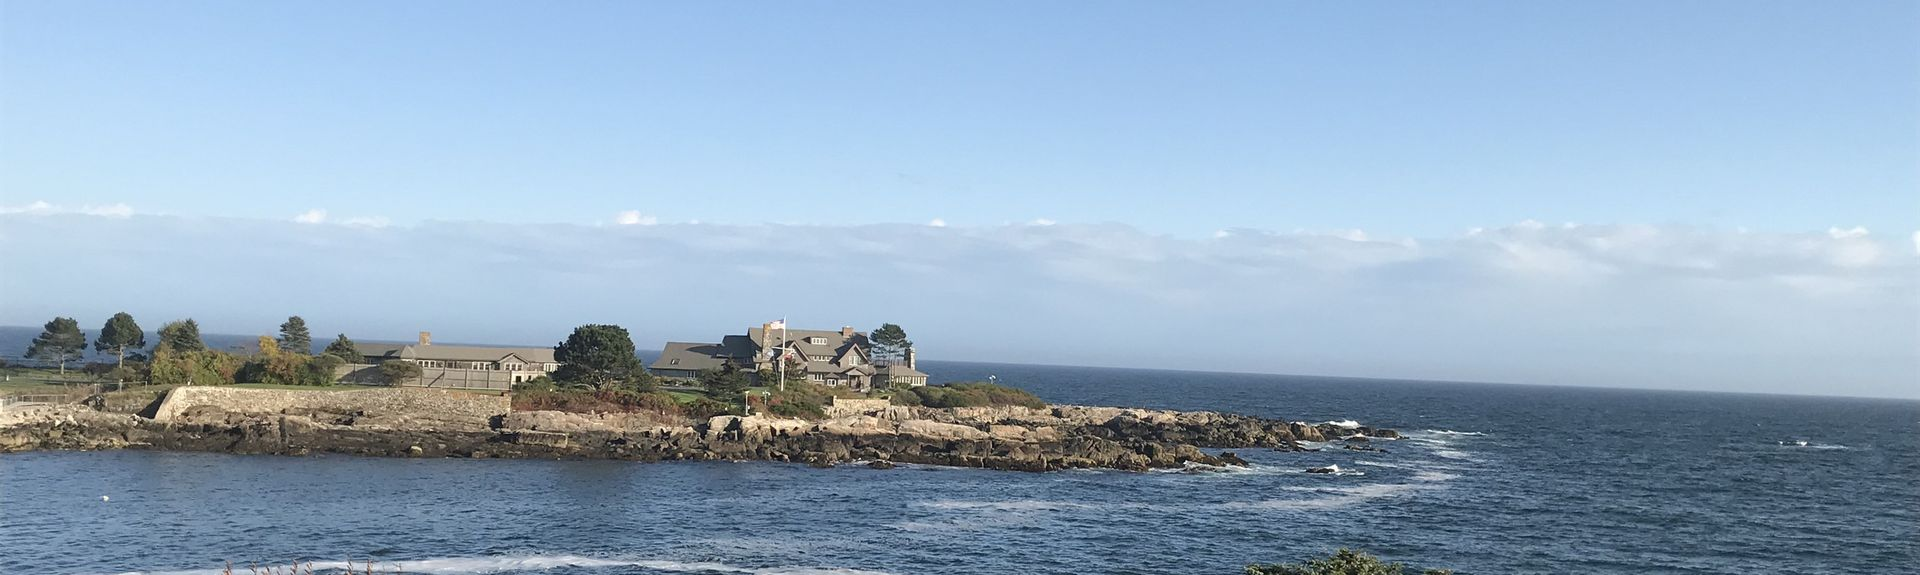 Cape Porpoise, Kennebunkport, Maine, Estados Unidos